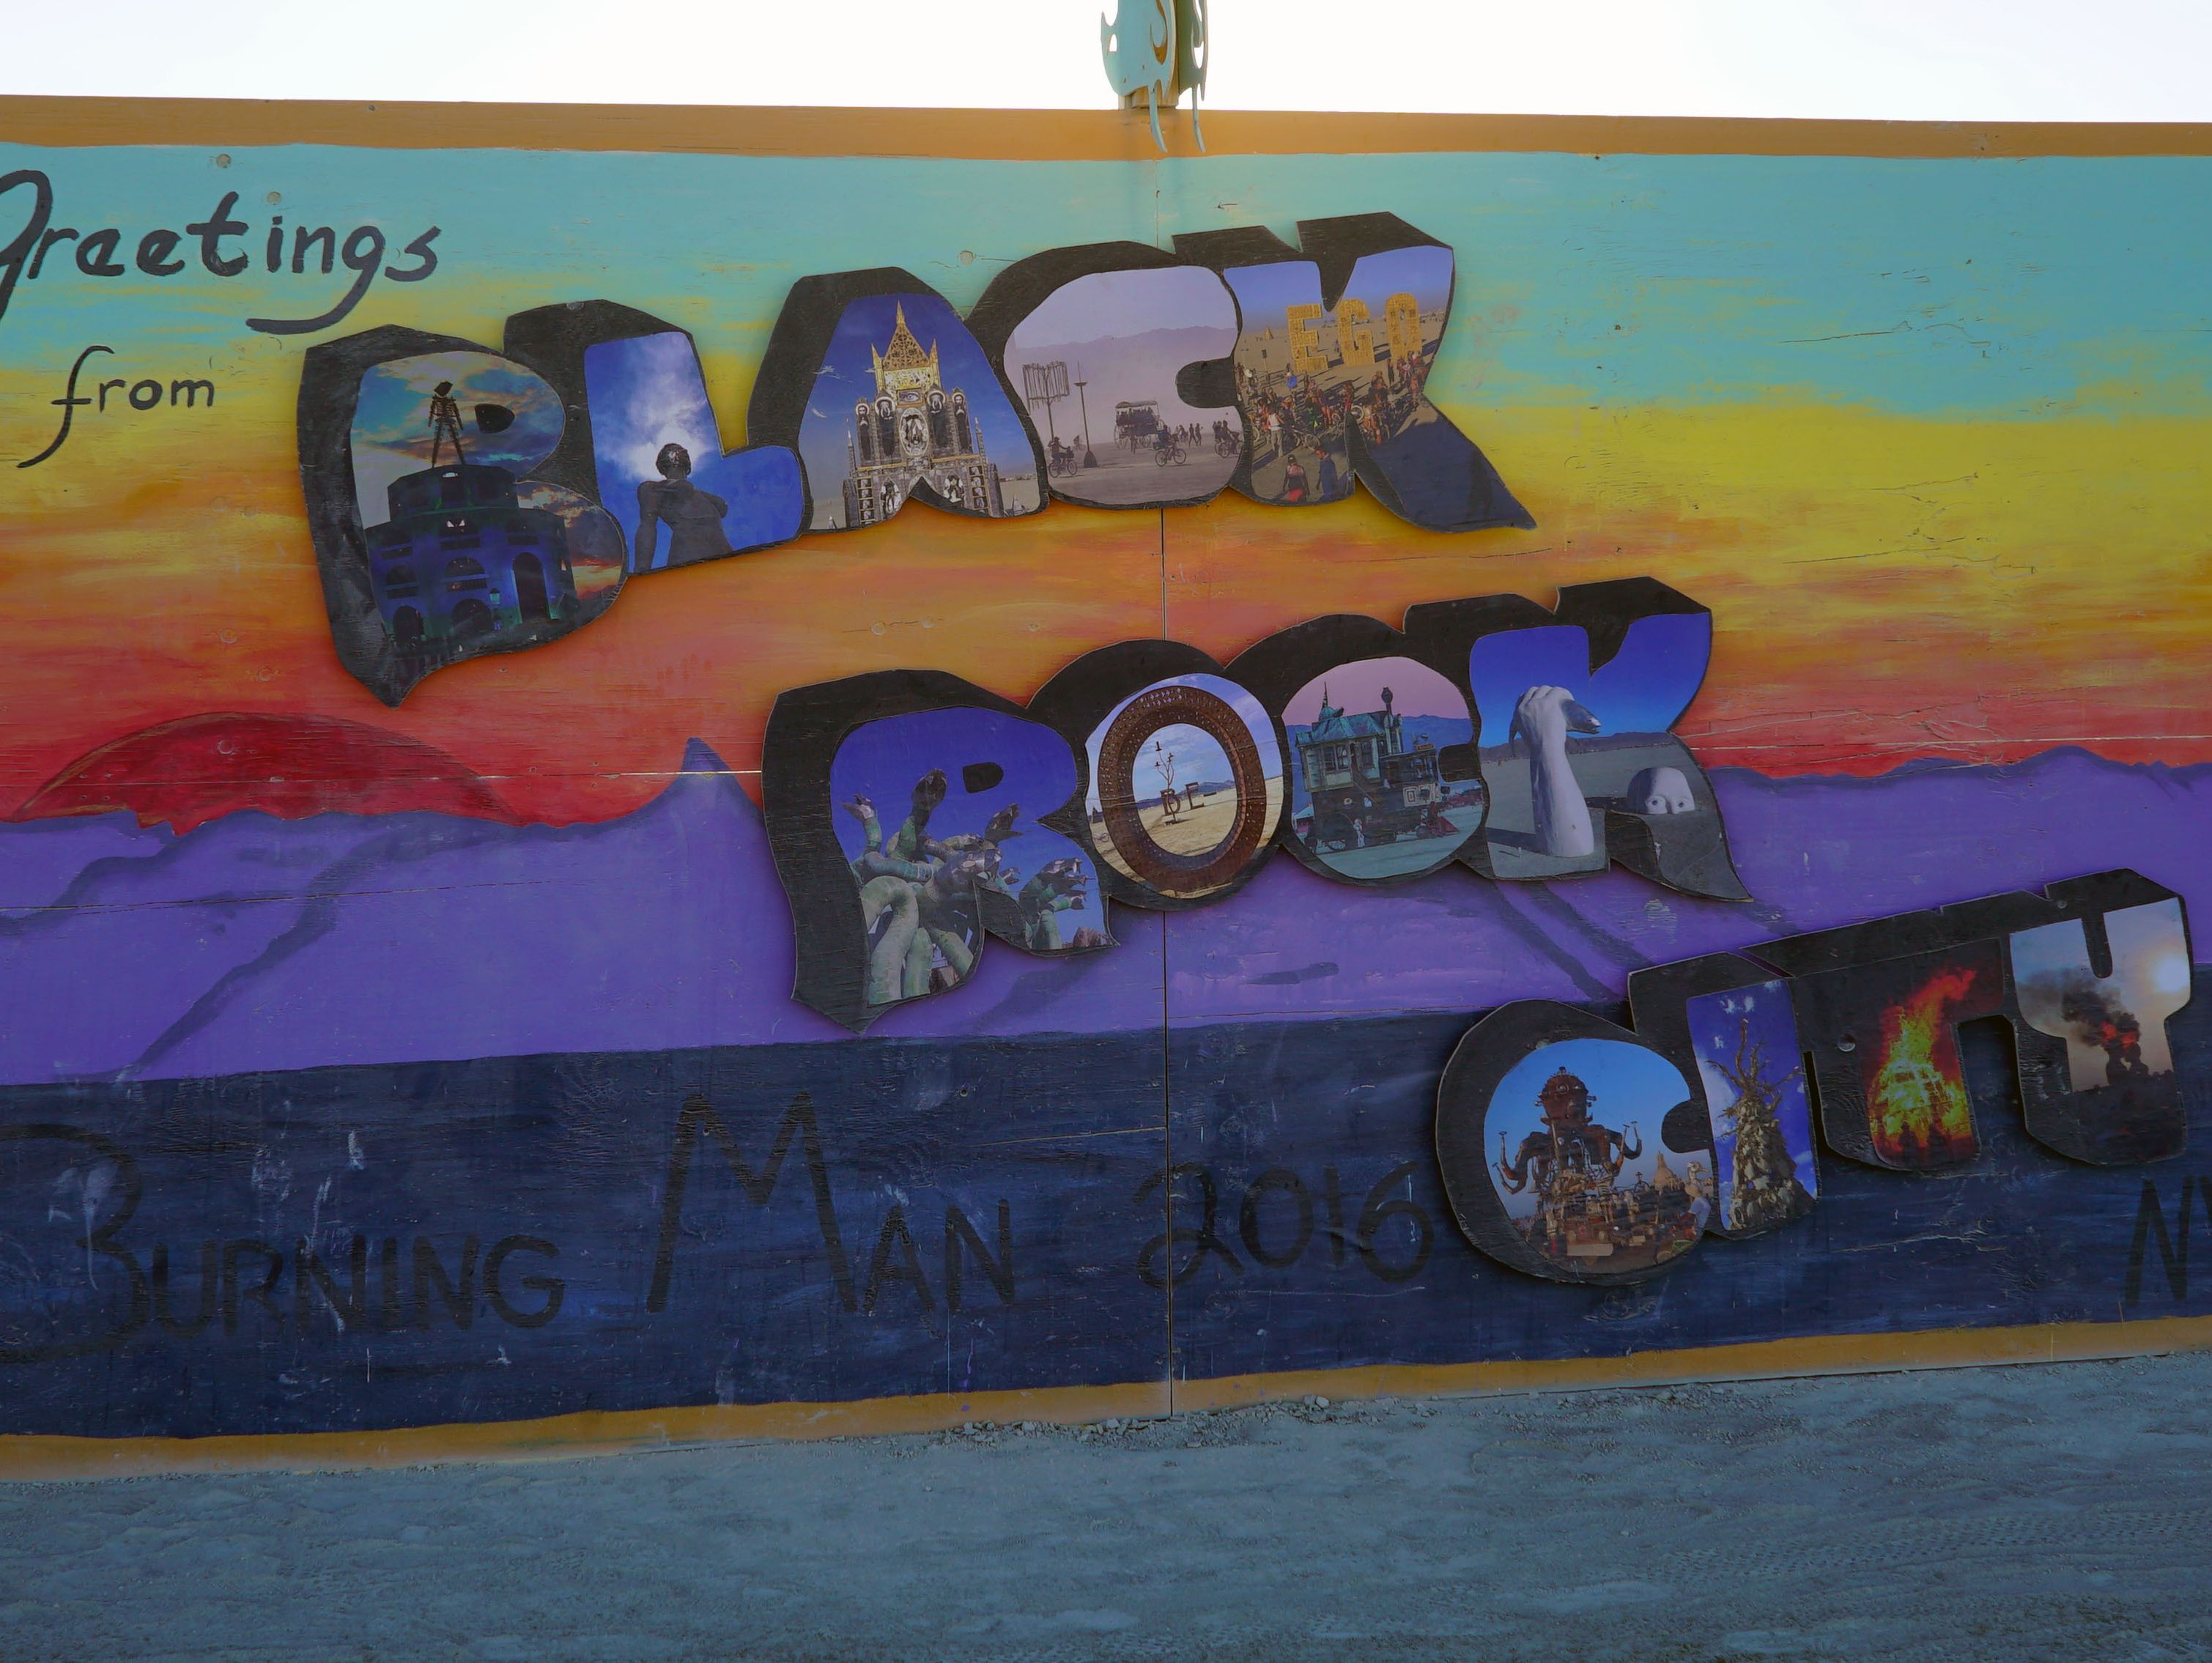 A hand-lettered billboard inside Burning Man's encampment welcomes visitors to the 70,000-person temporary civilization built in the Black Rock Desert for a week on Sept. 1, 2016.